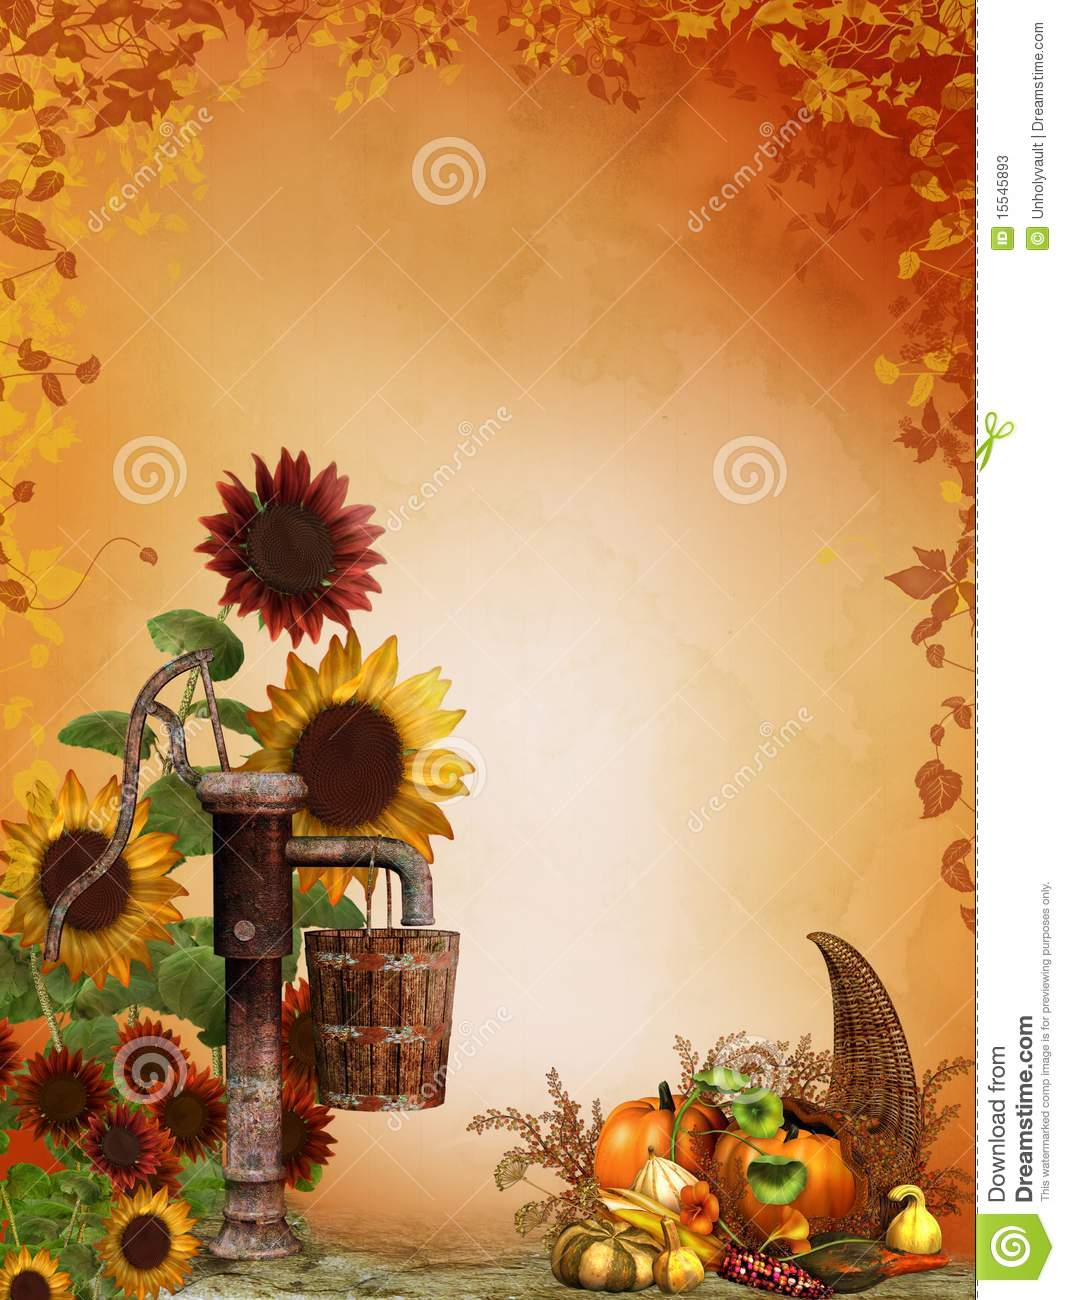 Fall Pumpkin Desktop Wallpaper Free Autumn Sunflowers With Cornucopia Stock Photos Image